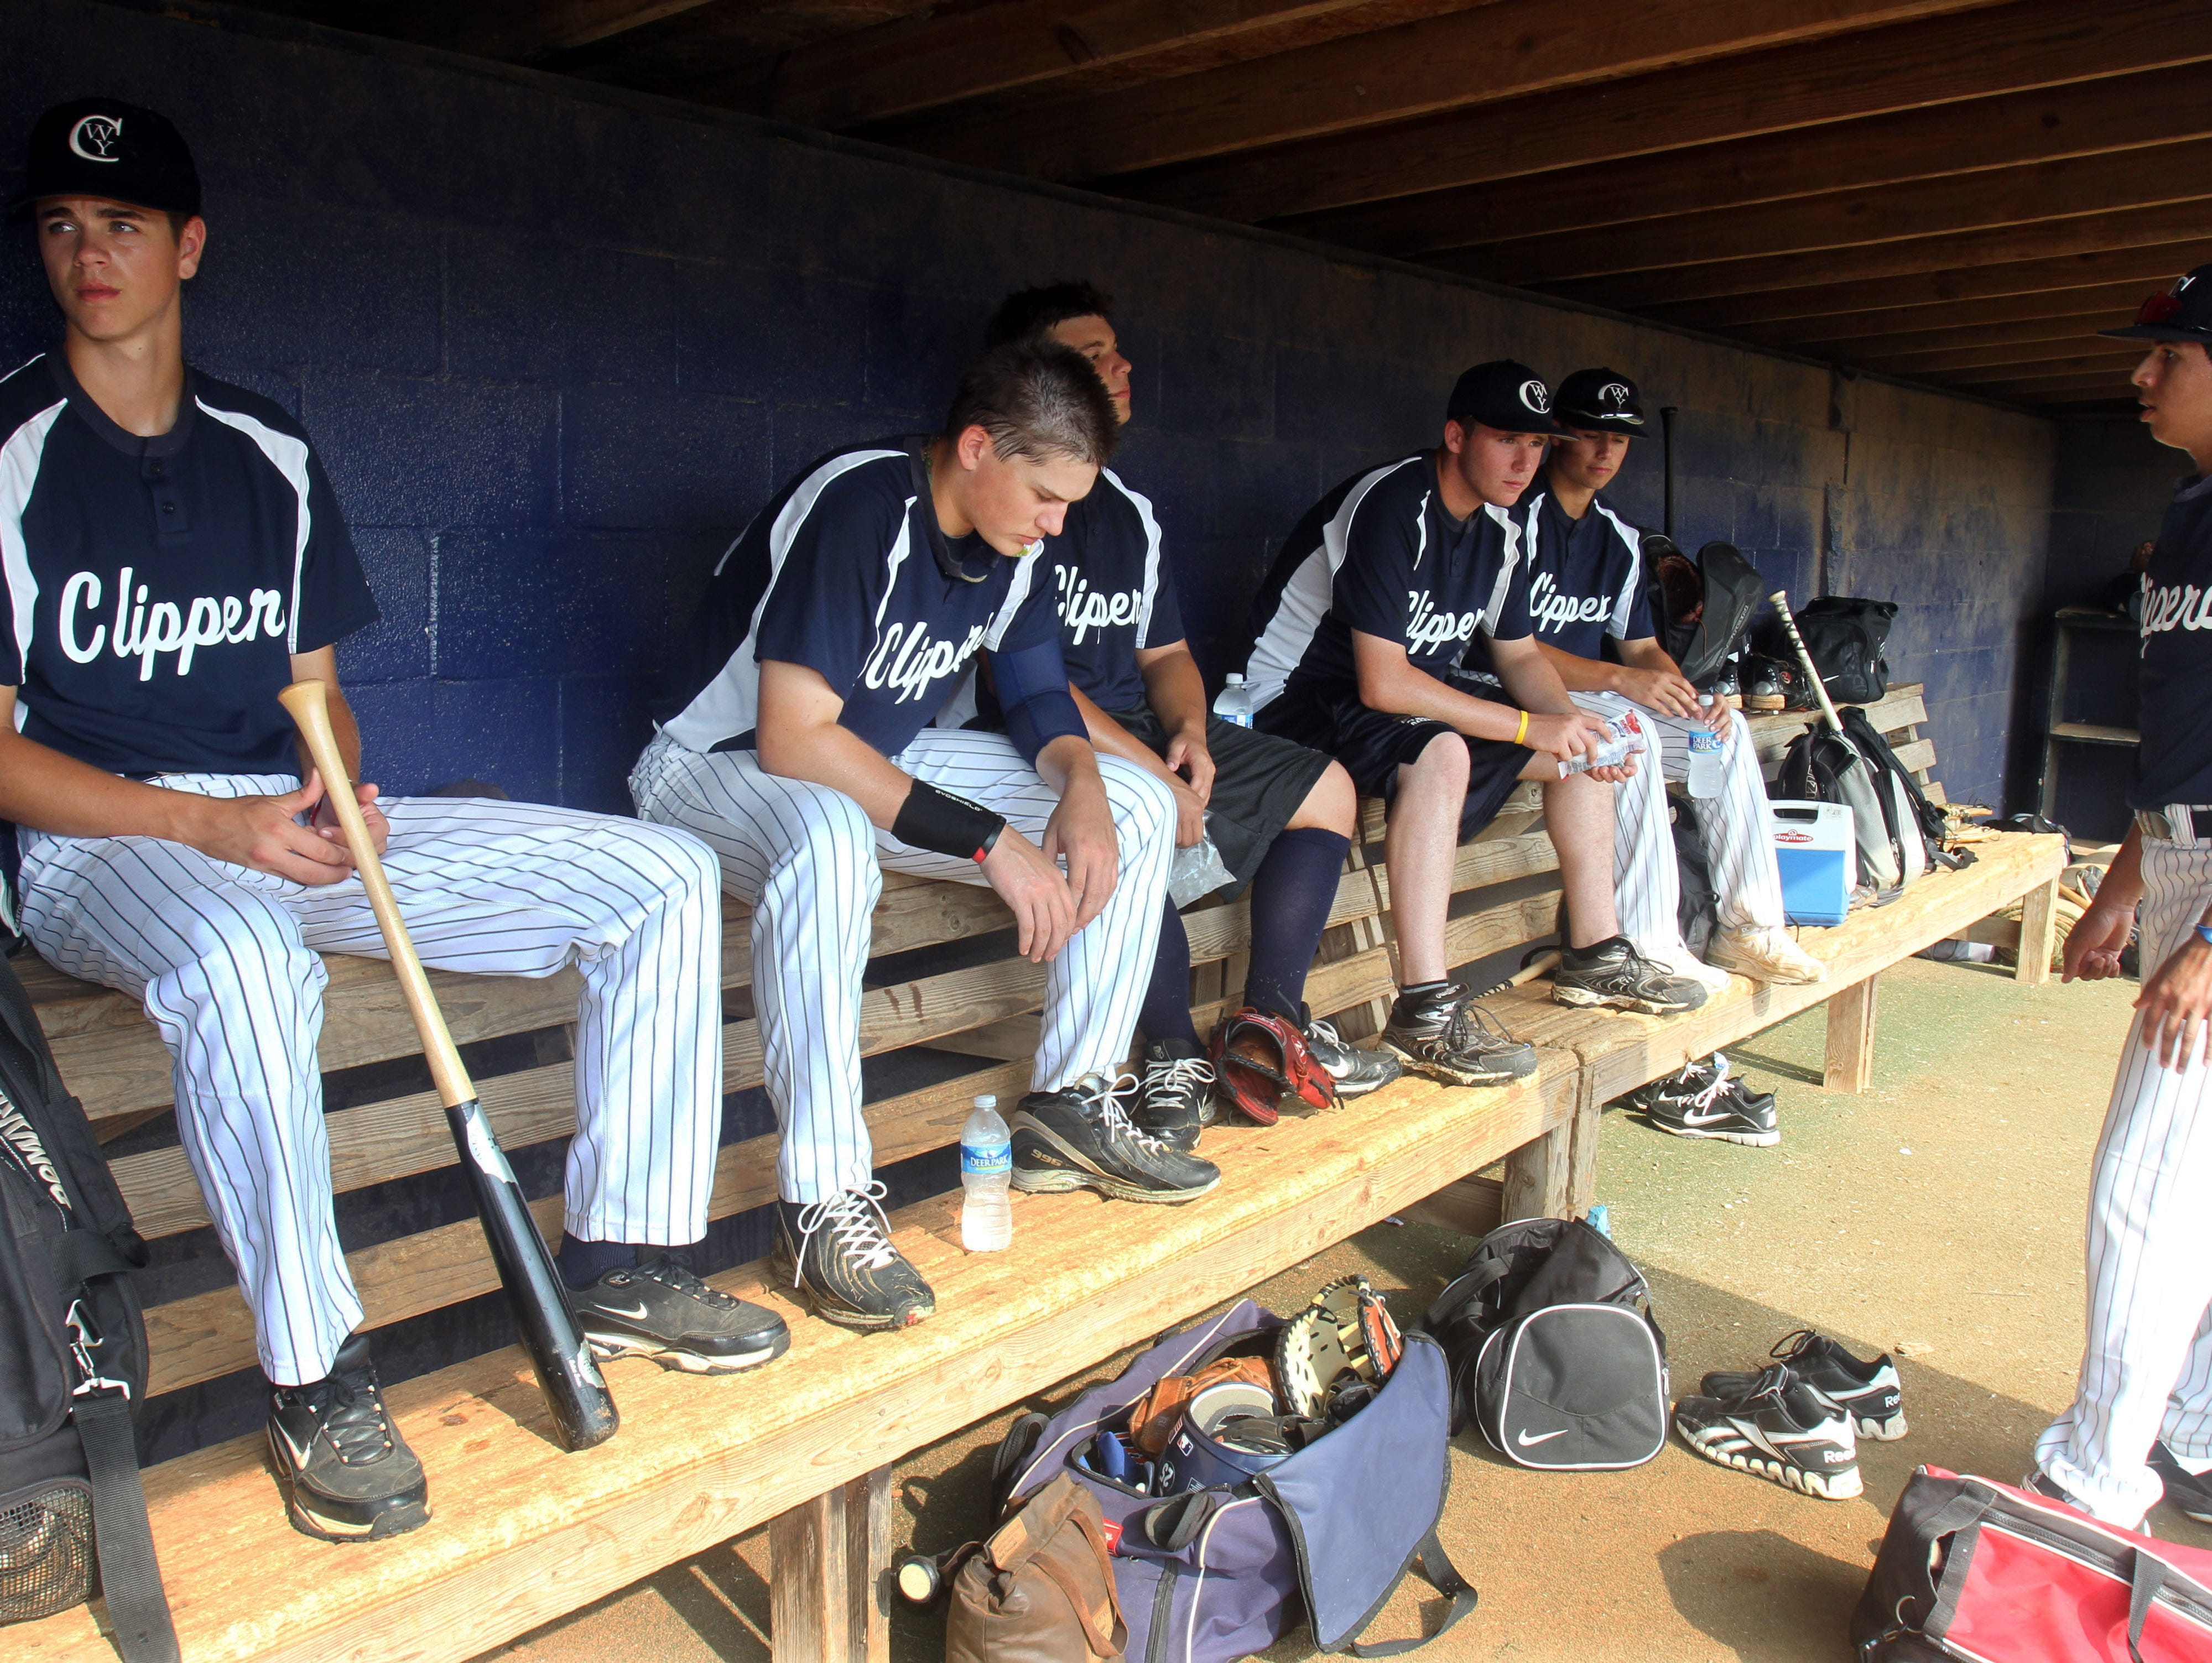 Members of the World Yacht Clippers, which is comprised of high school baseball players primarily from Lower Hudson region, sit in the dugout before a game during the Perfect Game Invitational Baseball Tournament in Marietta, Ga. July 12, 2011. Thousands of the best high school baseball players in the nation gathered for two weeks to play games in front of college and professional scouts in the hope of receiving scholarships to colleges or being pursued major league organizations. ( Seth Harrison / The Journal News )